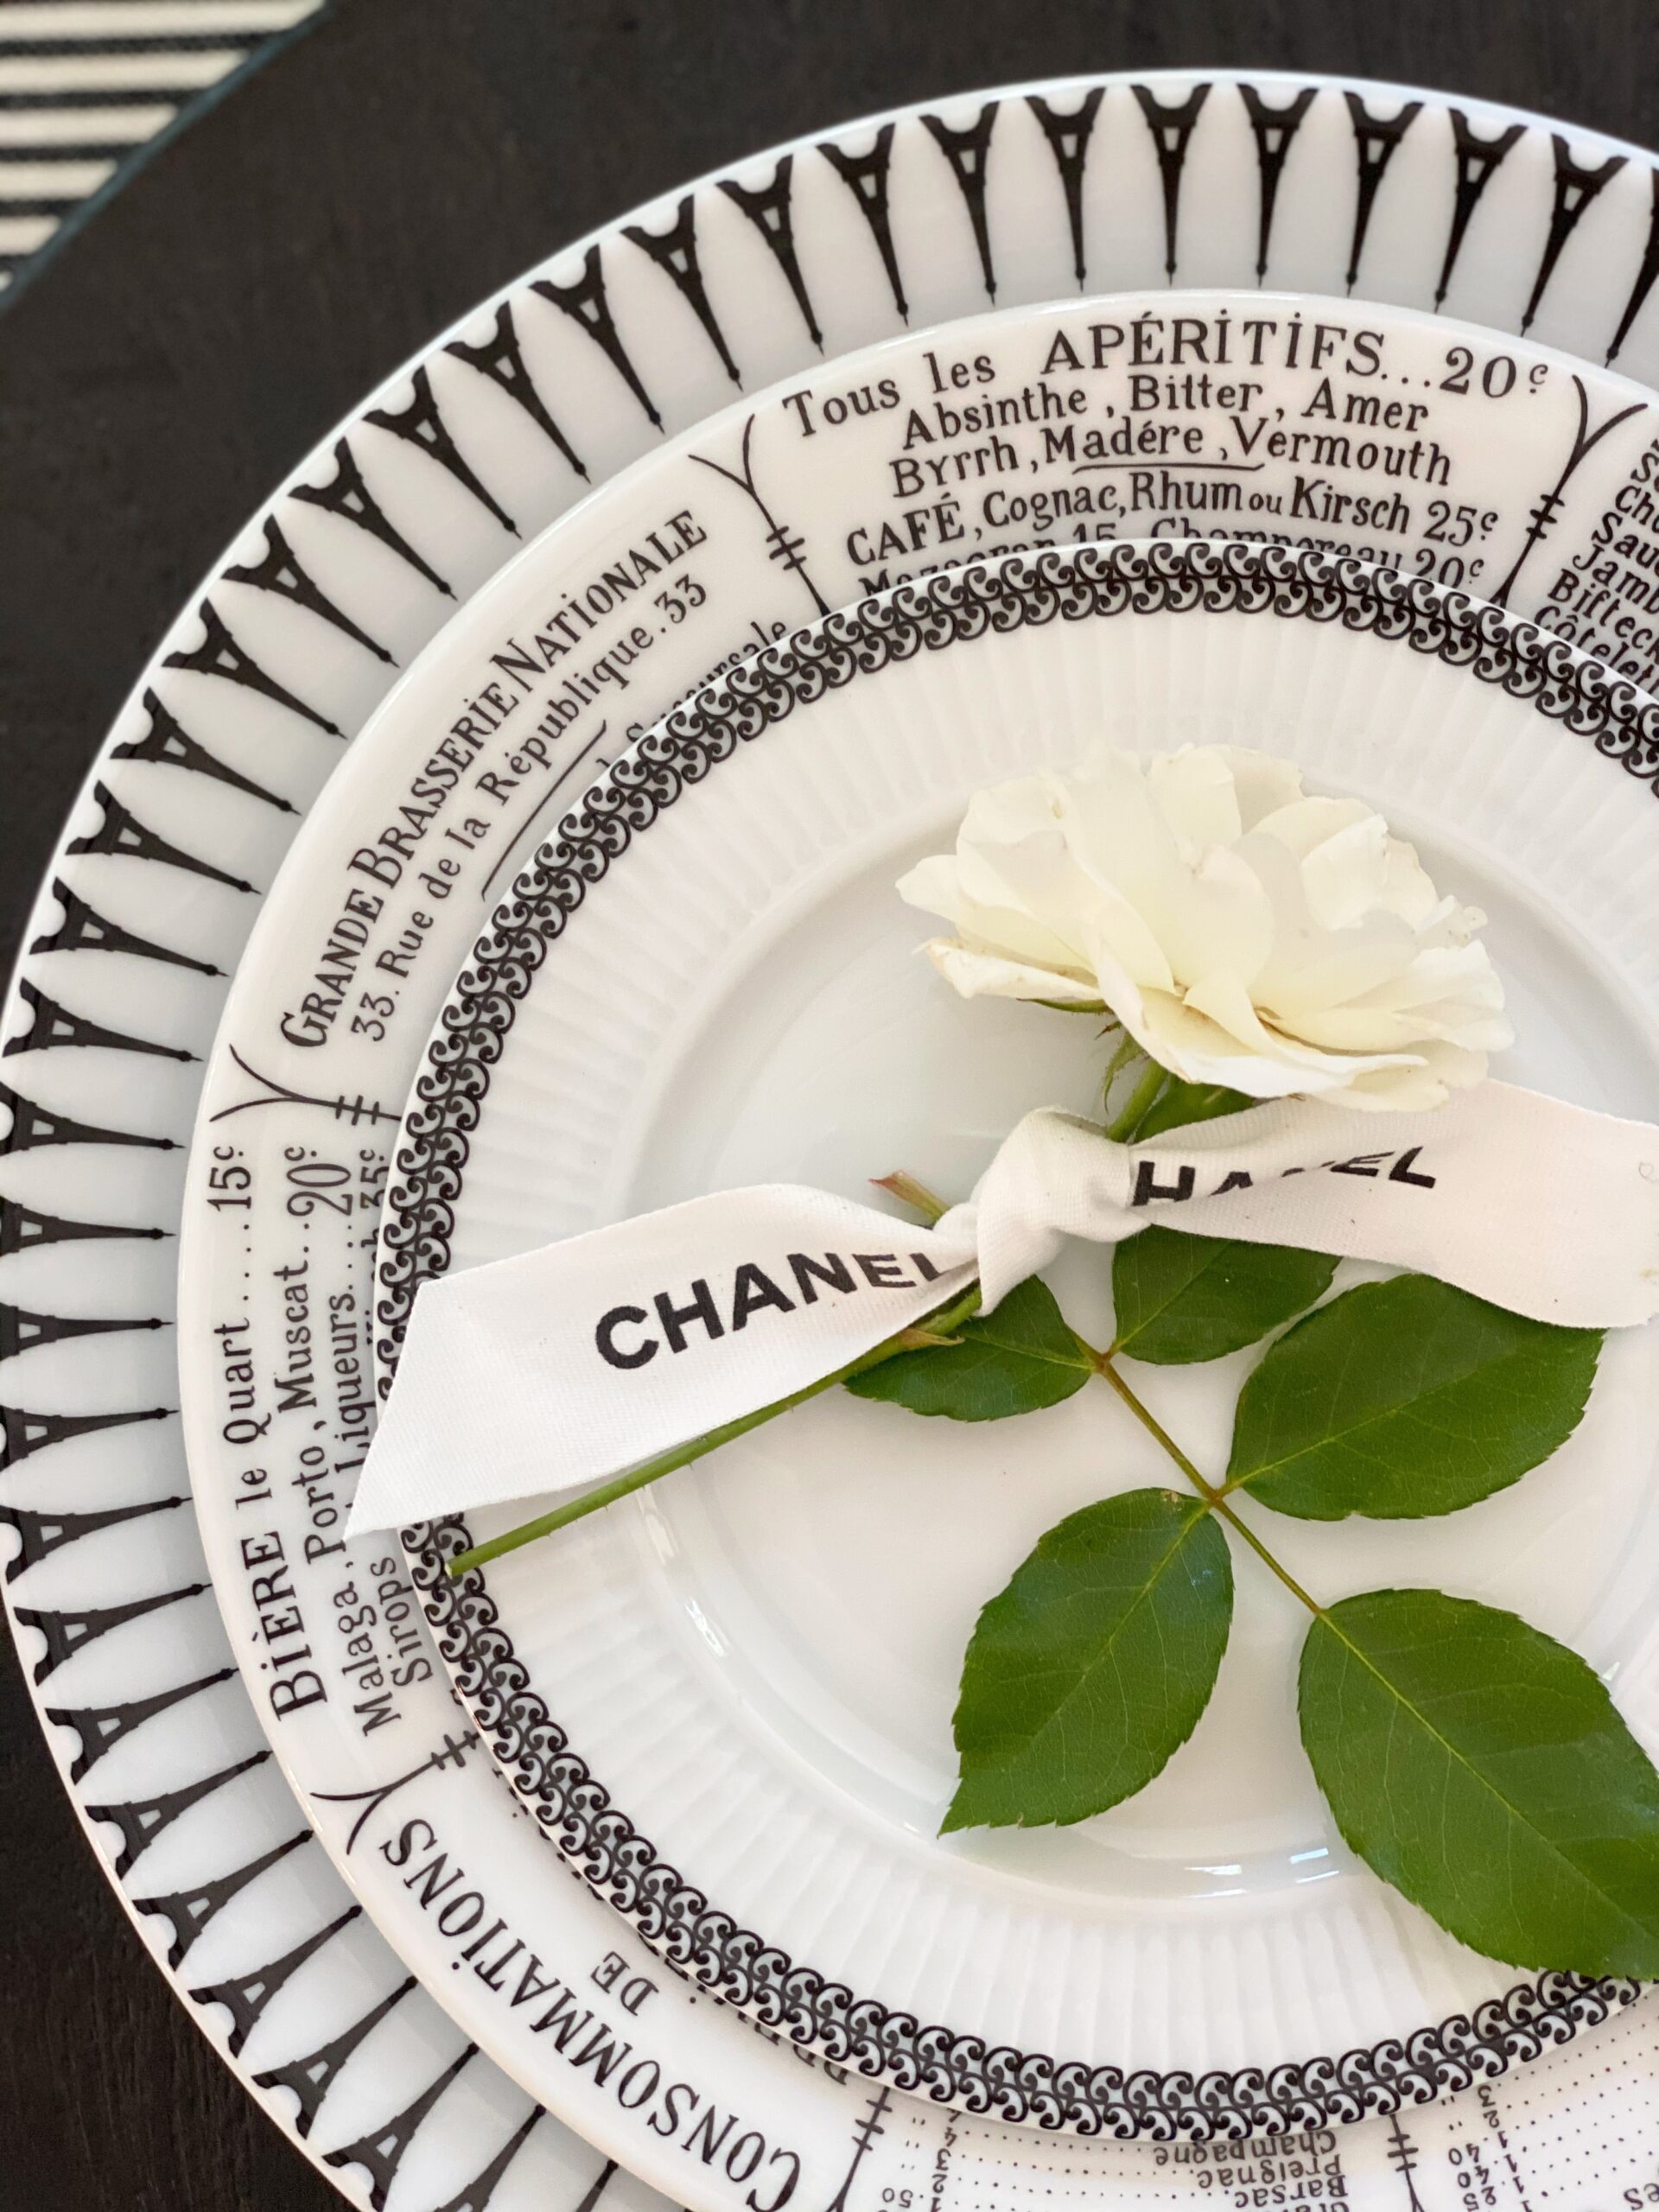 Chanel Party: Black, White and Oh So Parisian